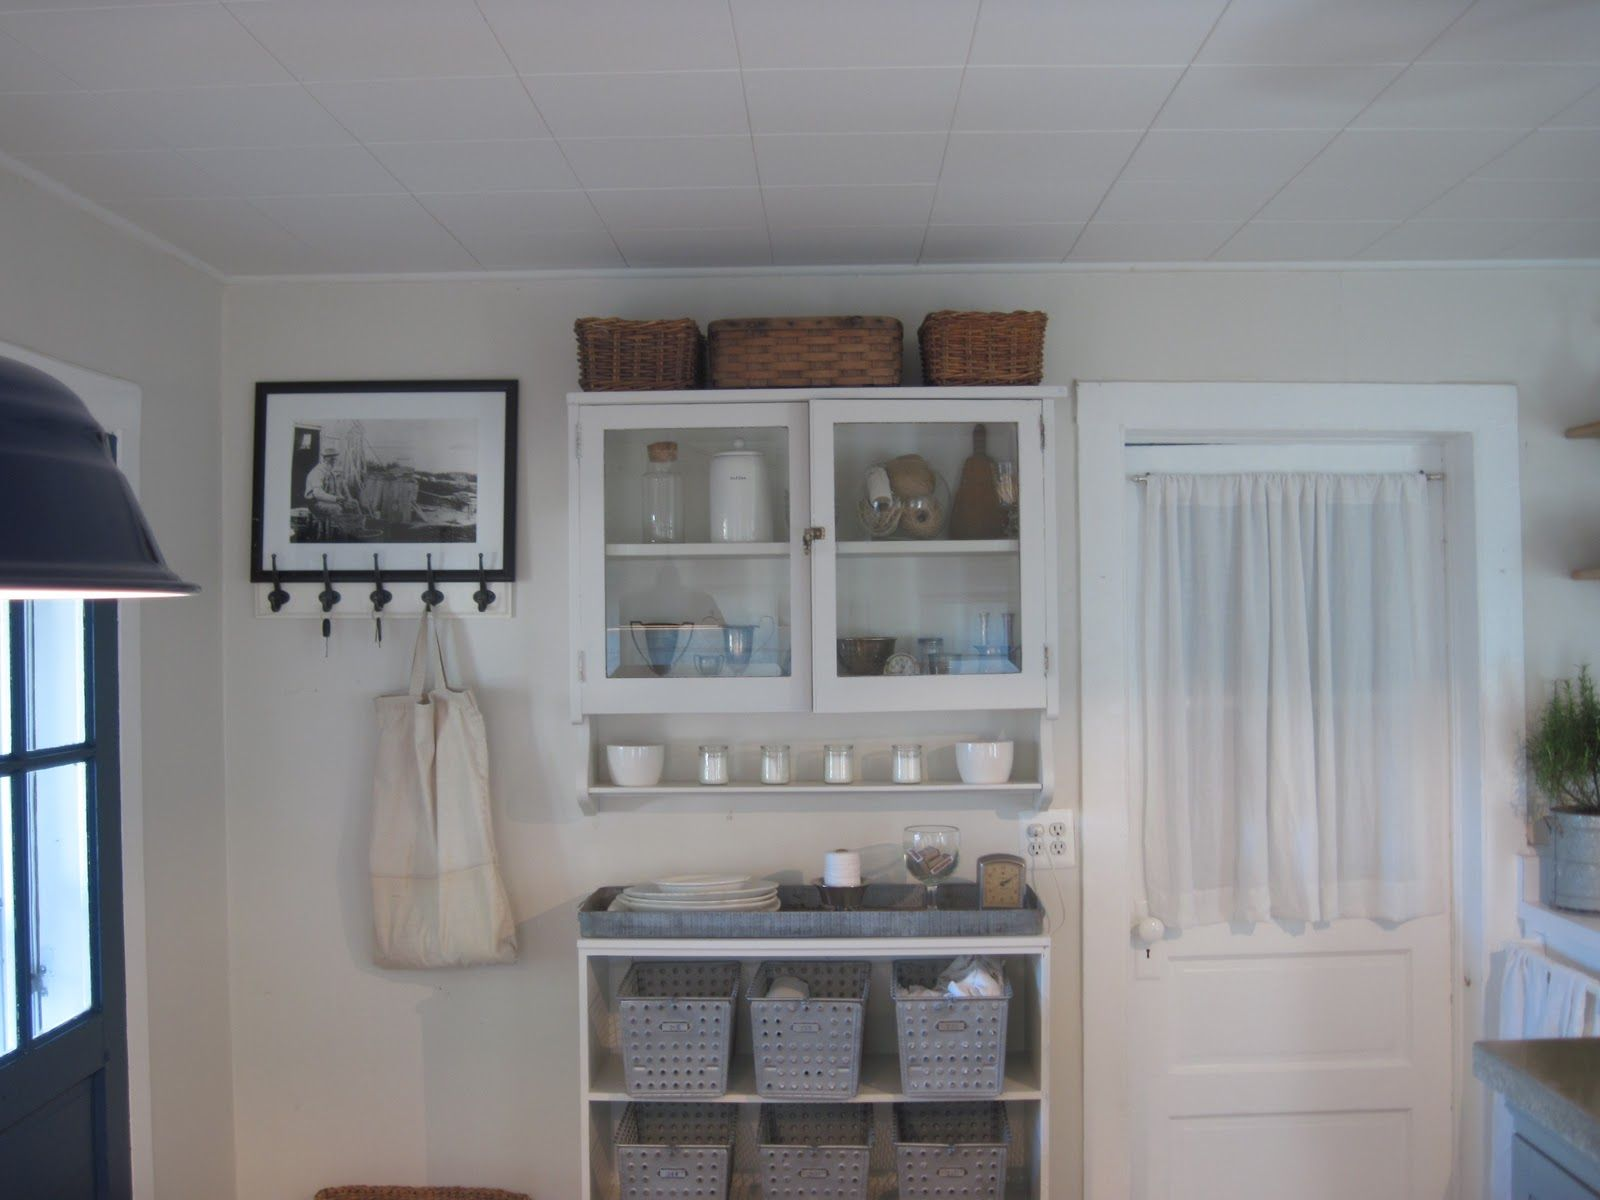 benjamin moore china white paint colors benjamin moore china white home decor bookcase. Black Bedroom Furniture Sets. Home Design Ideas